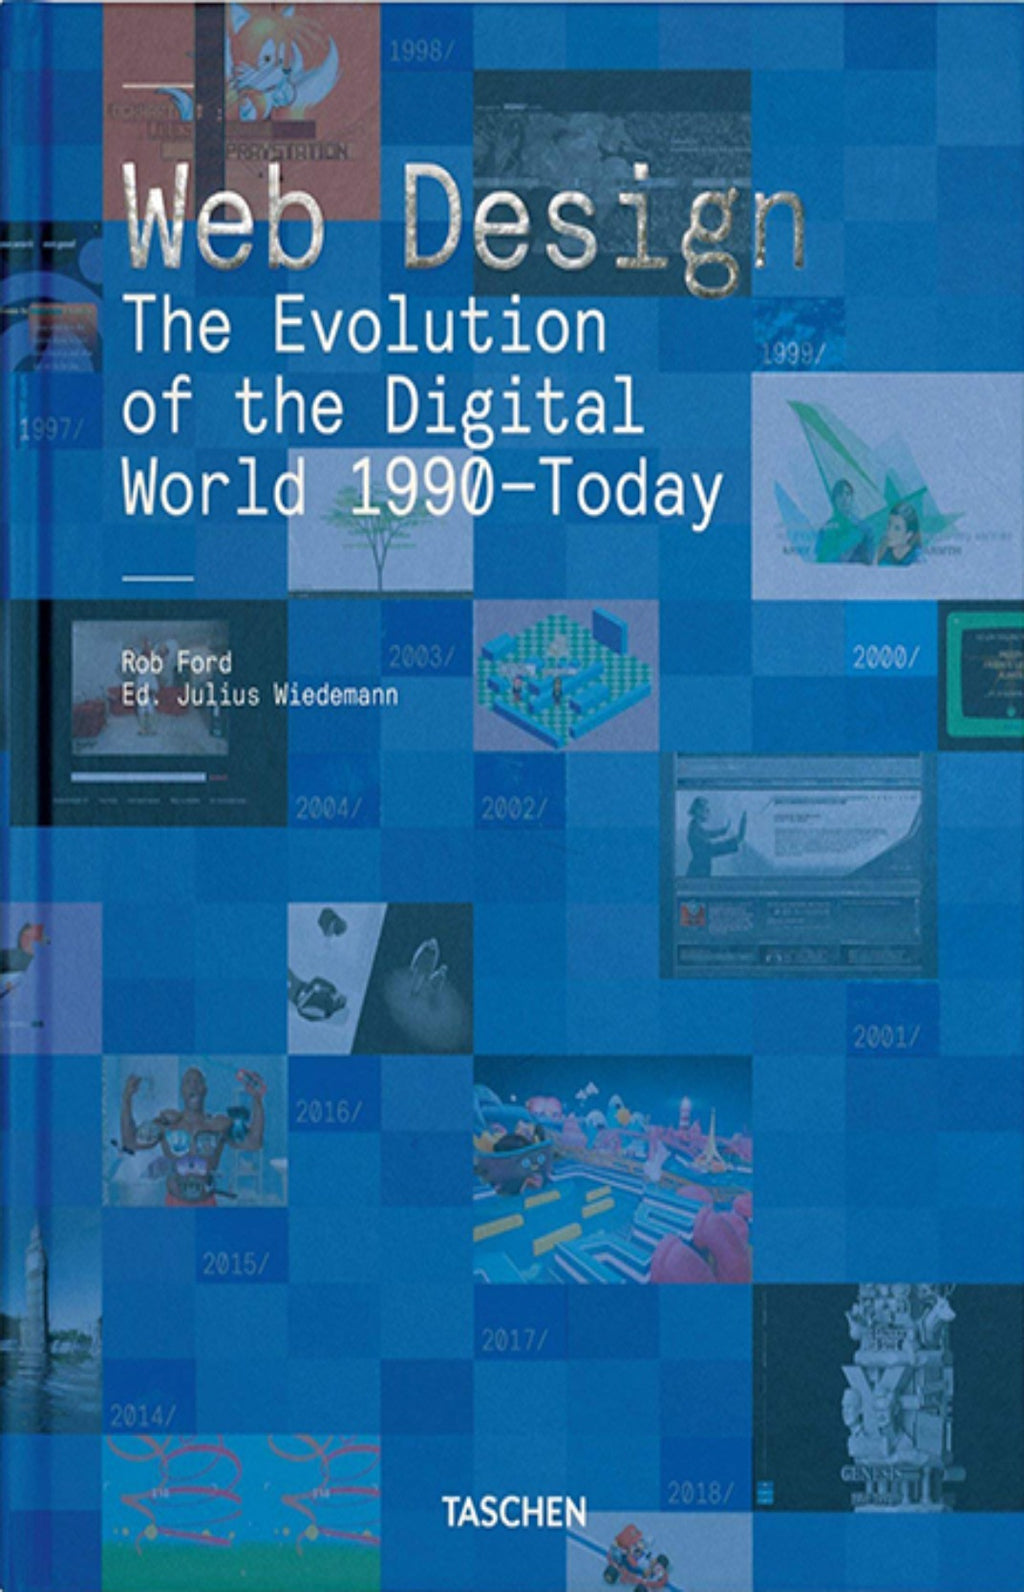 Web Design : The Evolution of the Digital World 1990-Today